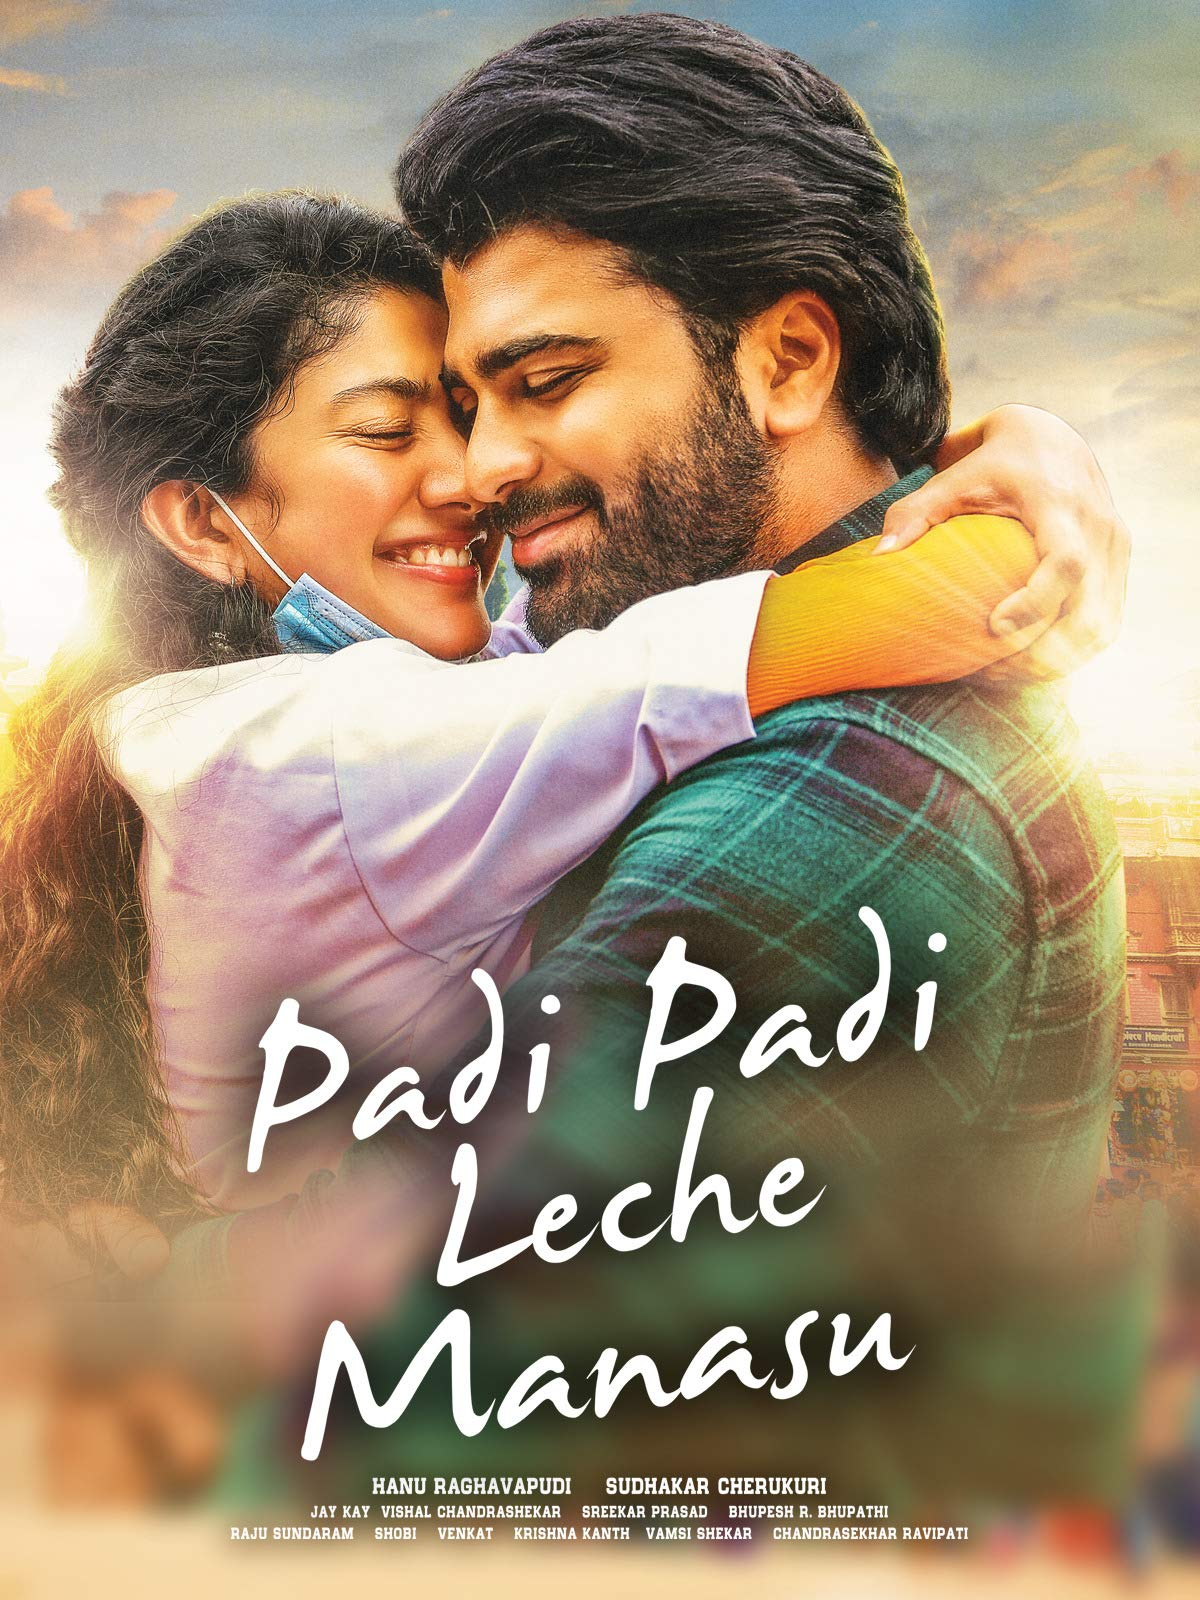 Dil Dhadak Dhadak (Padi Padi Leche Manasu) 2021 Hindi Dual Audio 1080p UNCUT HDRip ESubs 1.6GB